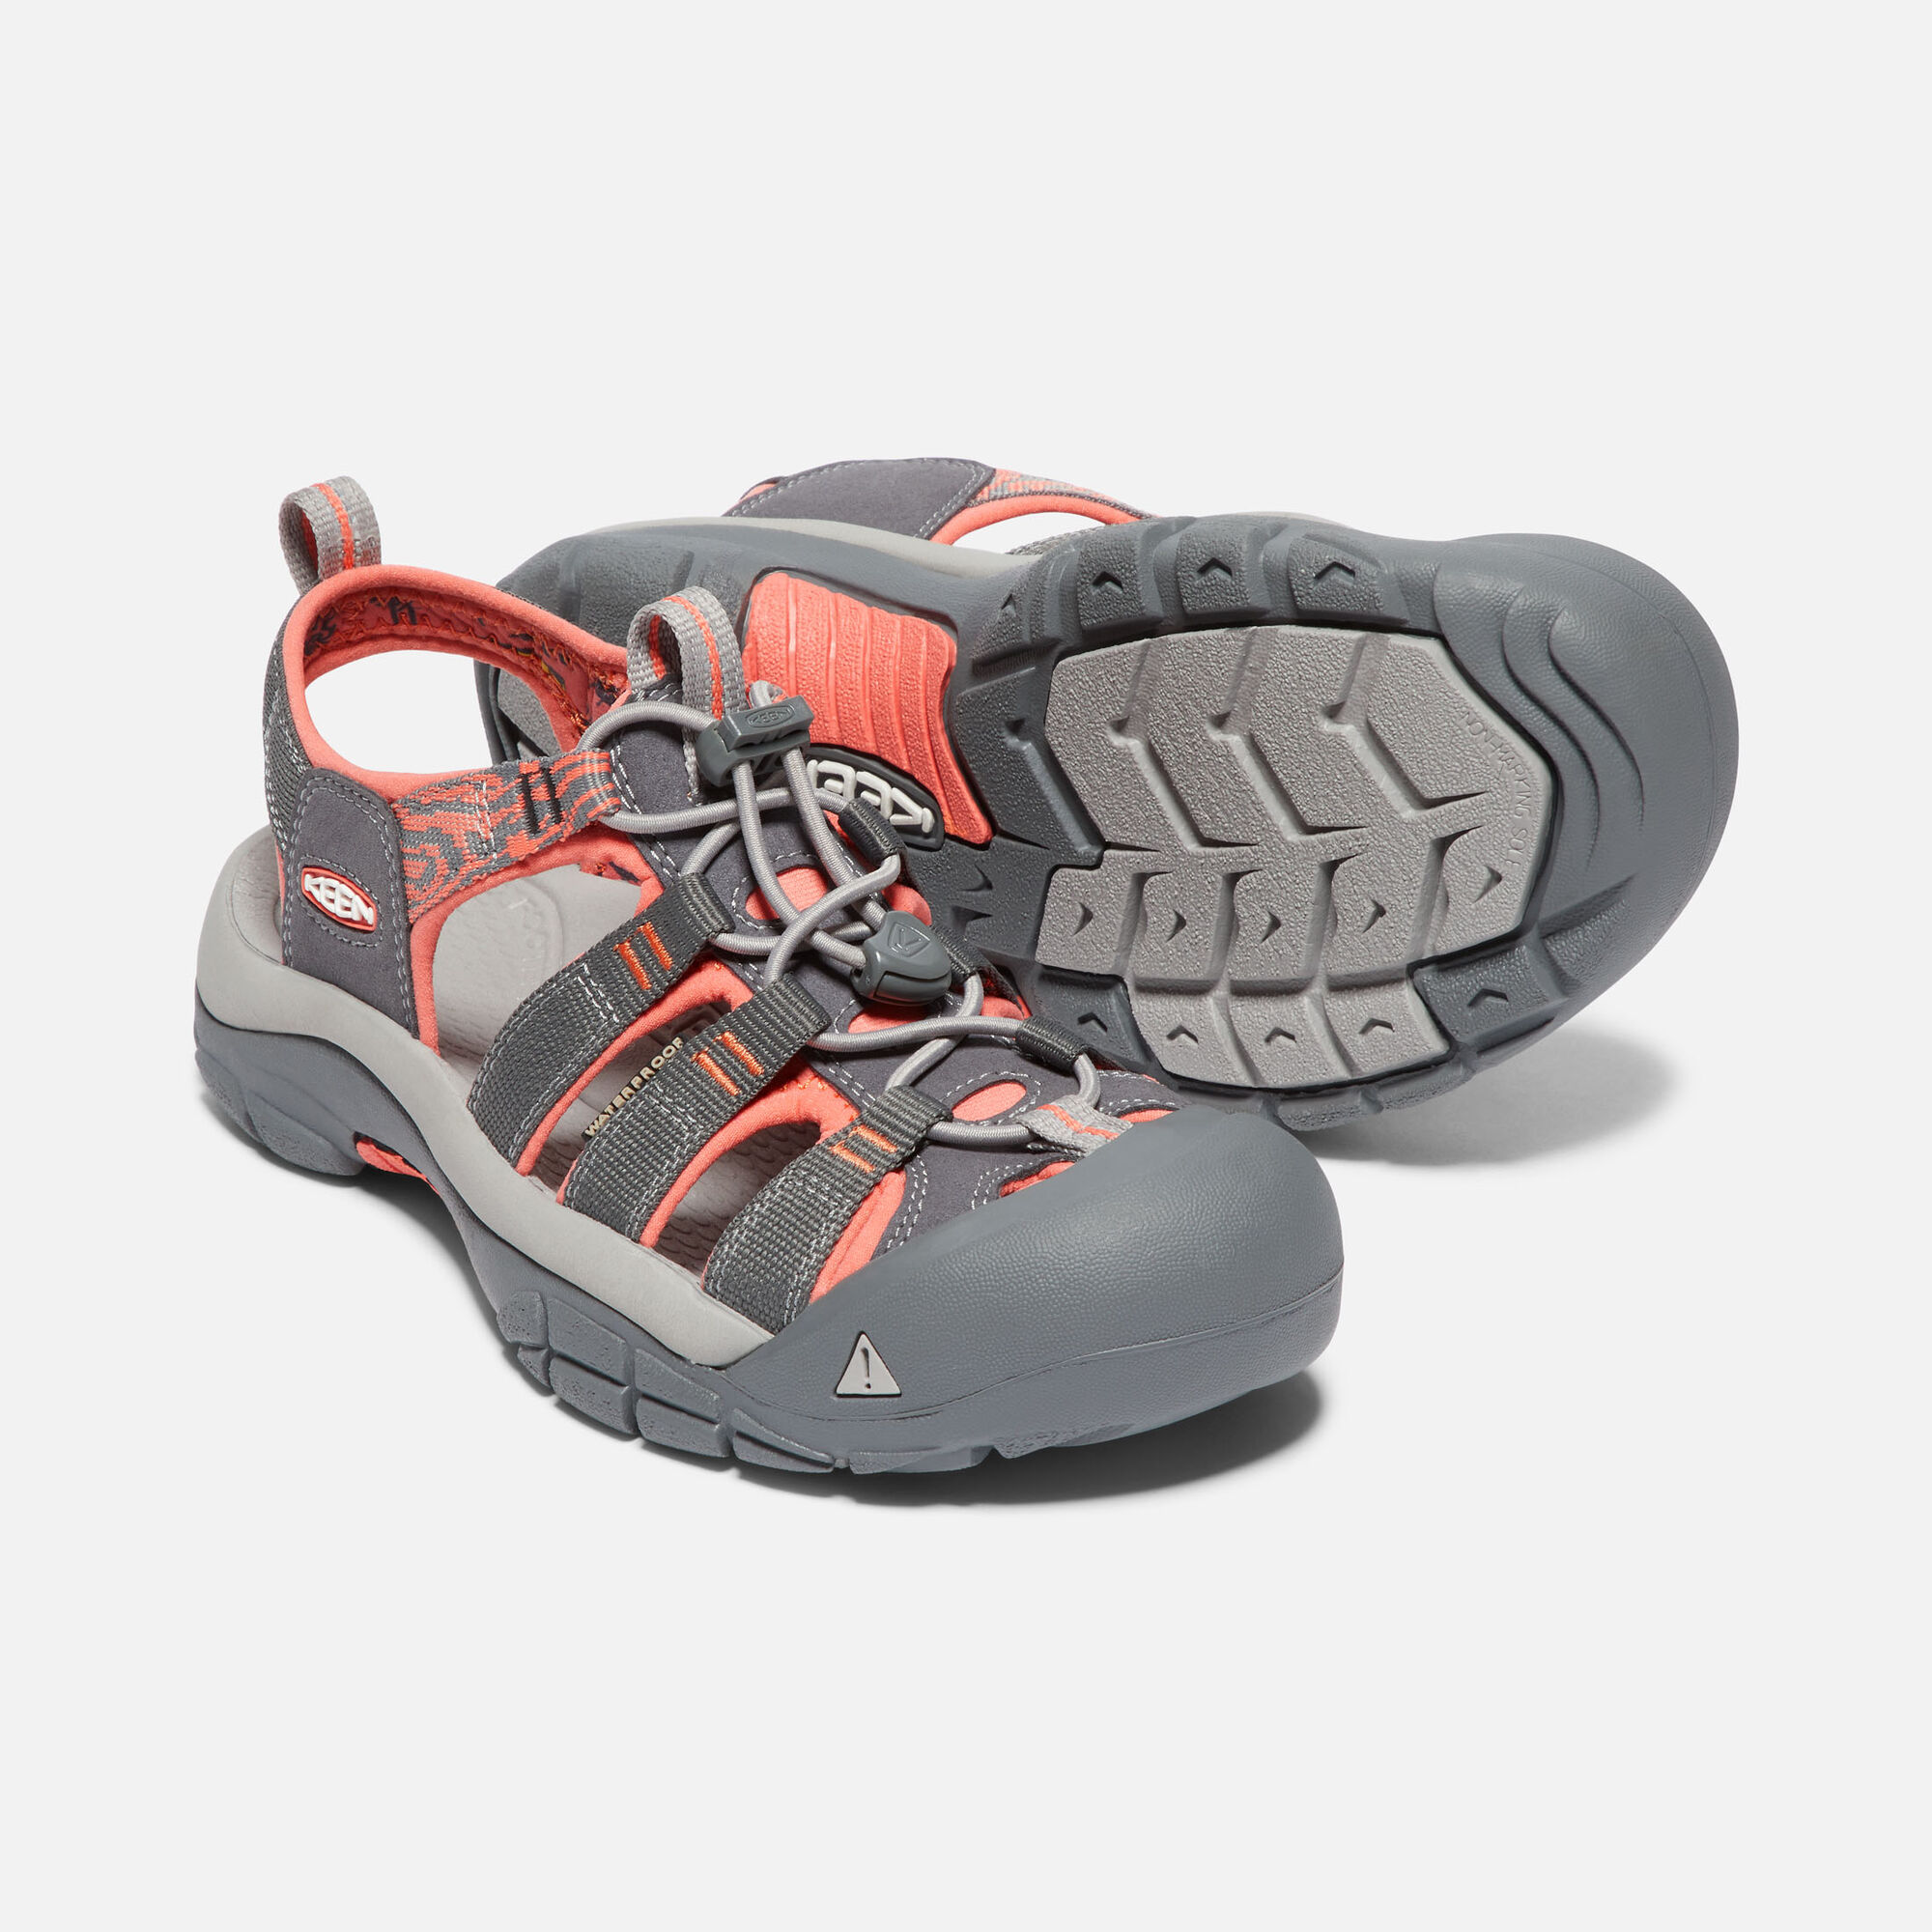 598048a7a80c Women s NEWPORT HYDRO in MAGNET CORAL - small view.